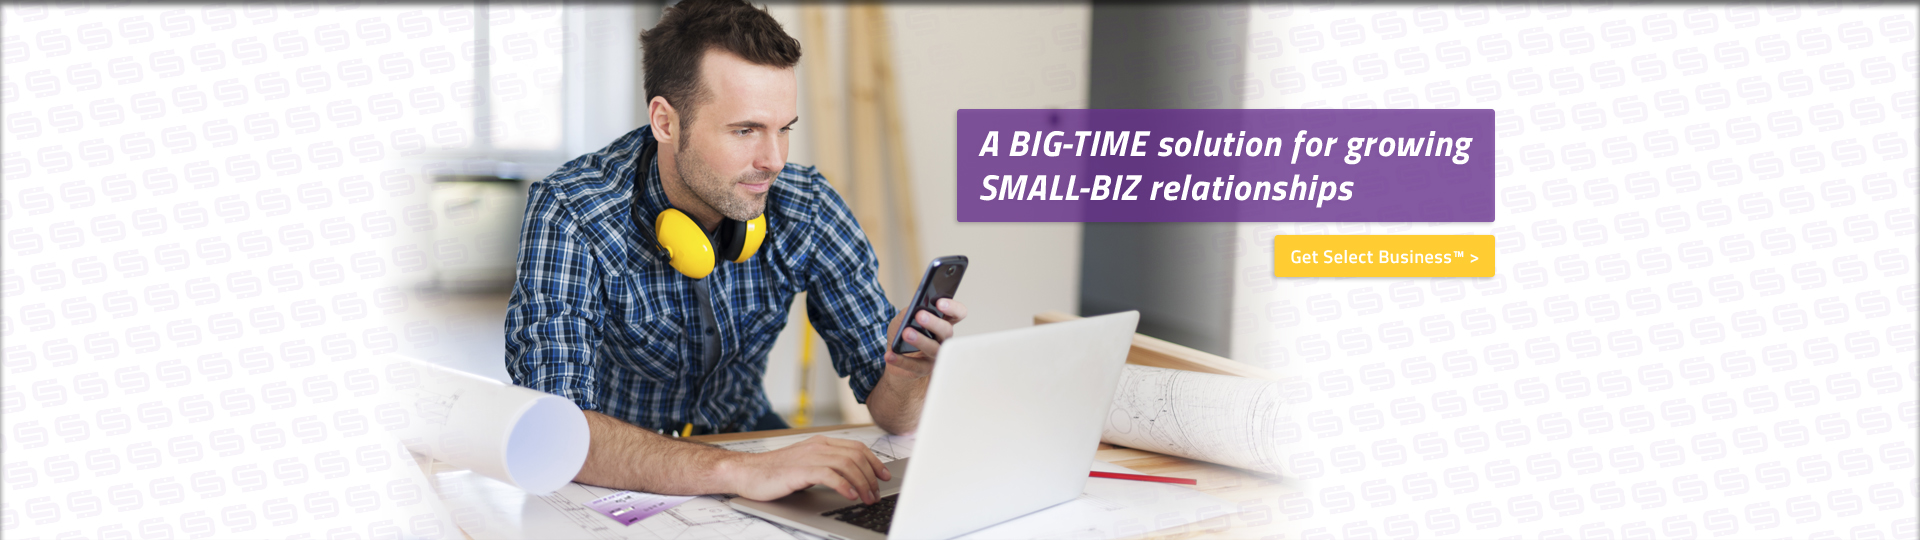 A BIG-TIME solution for growing SMALL-BIZ relationships